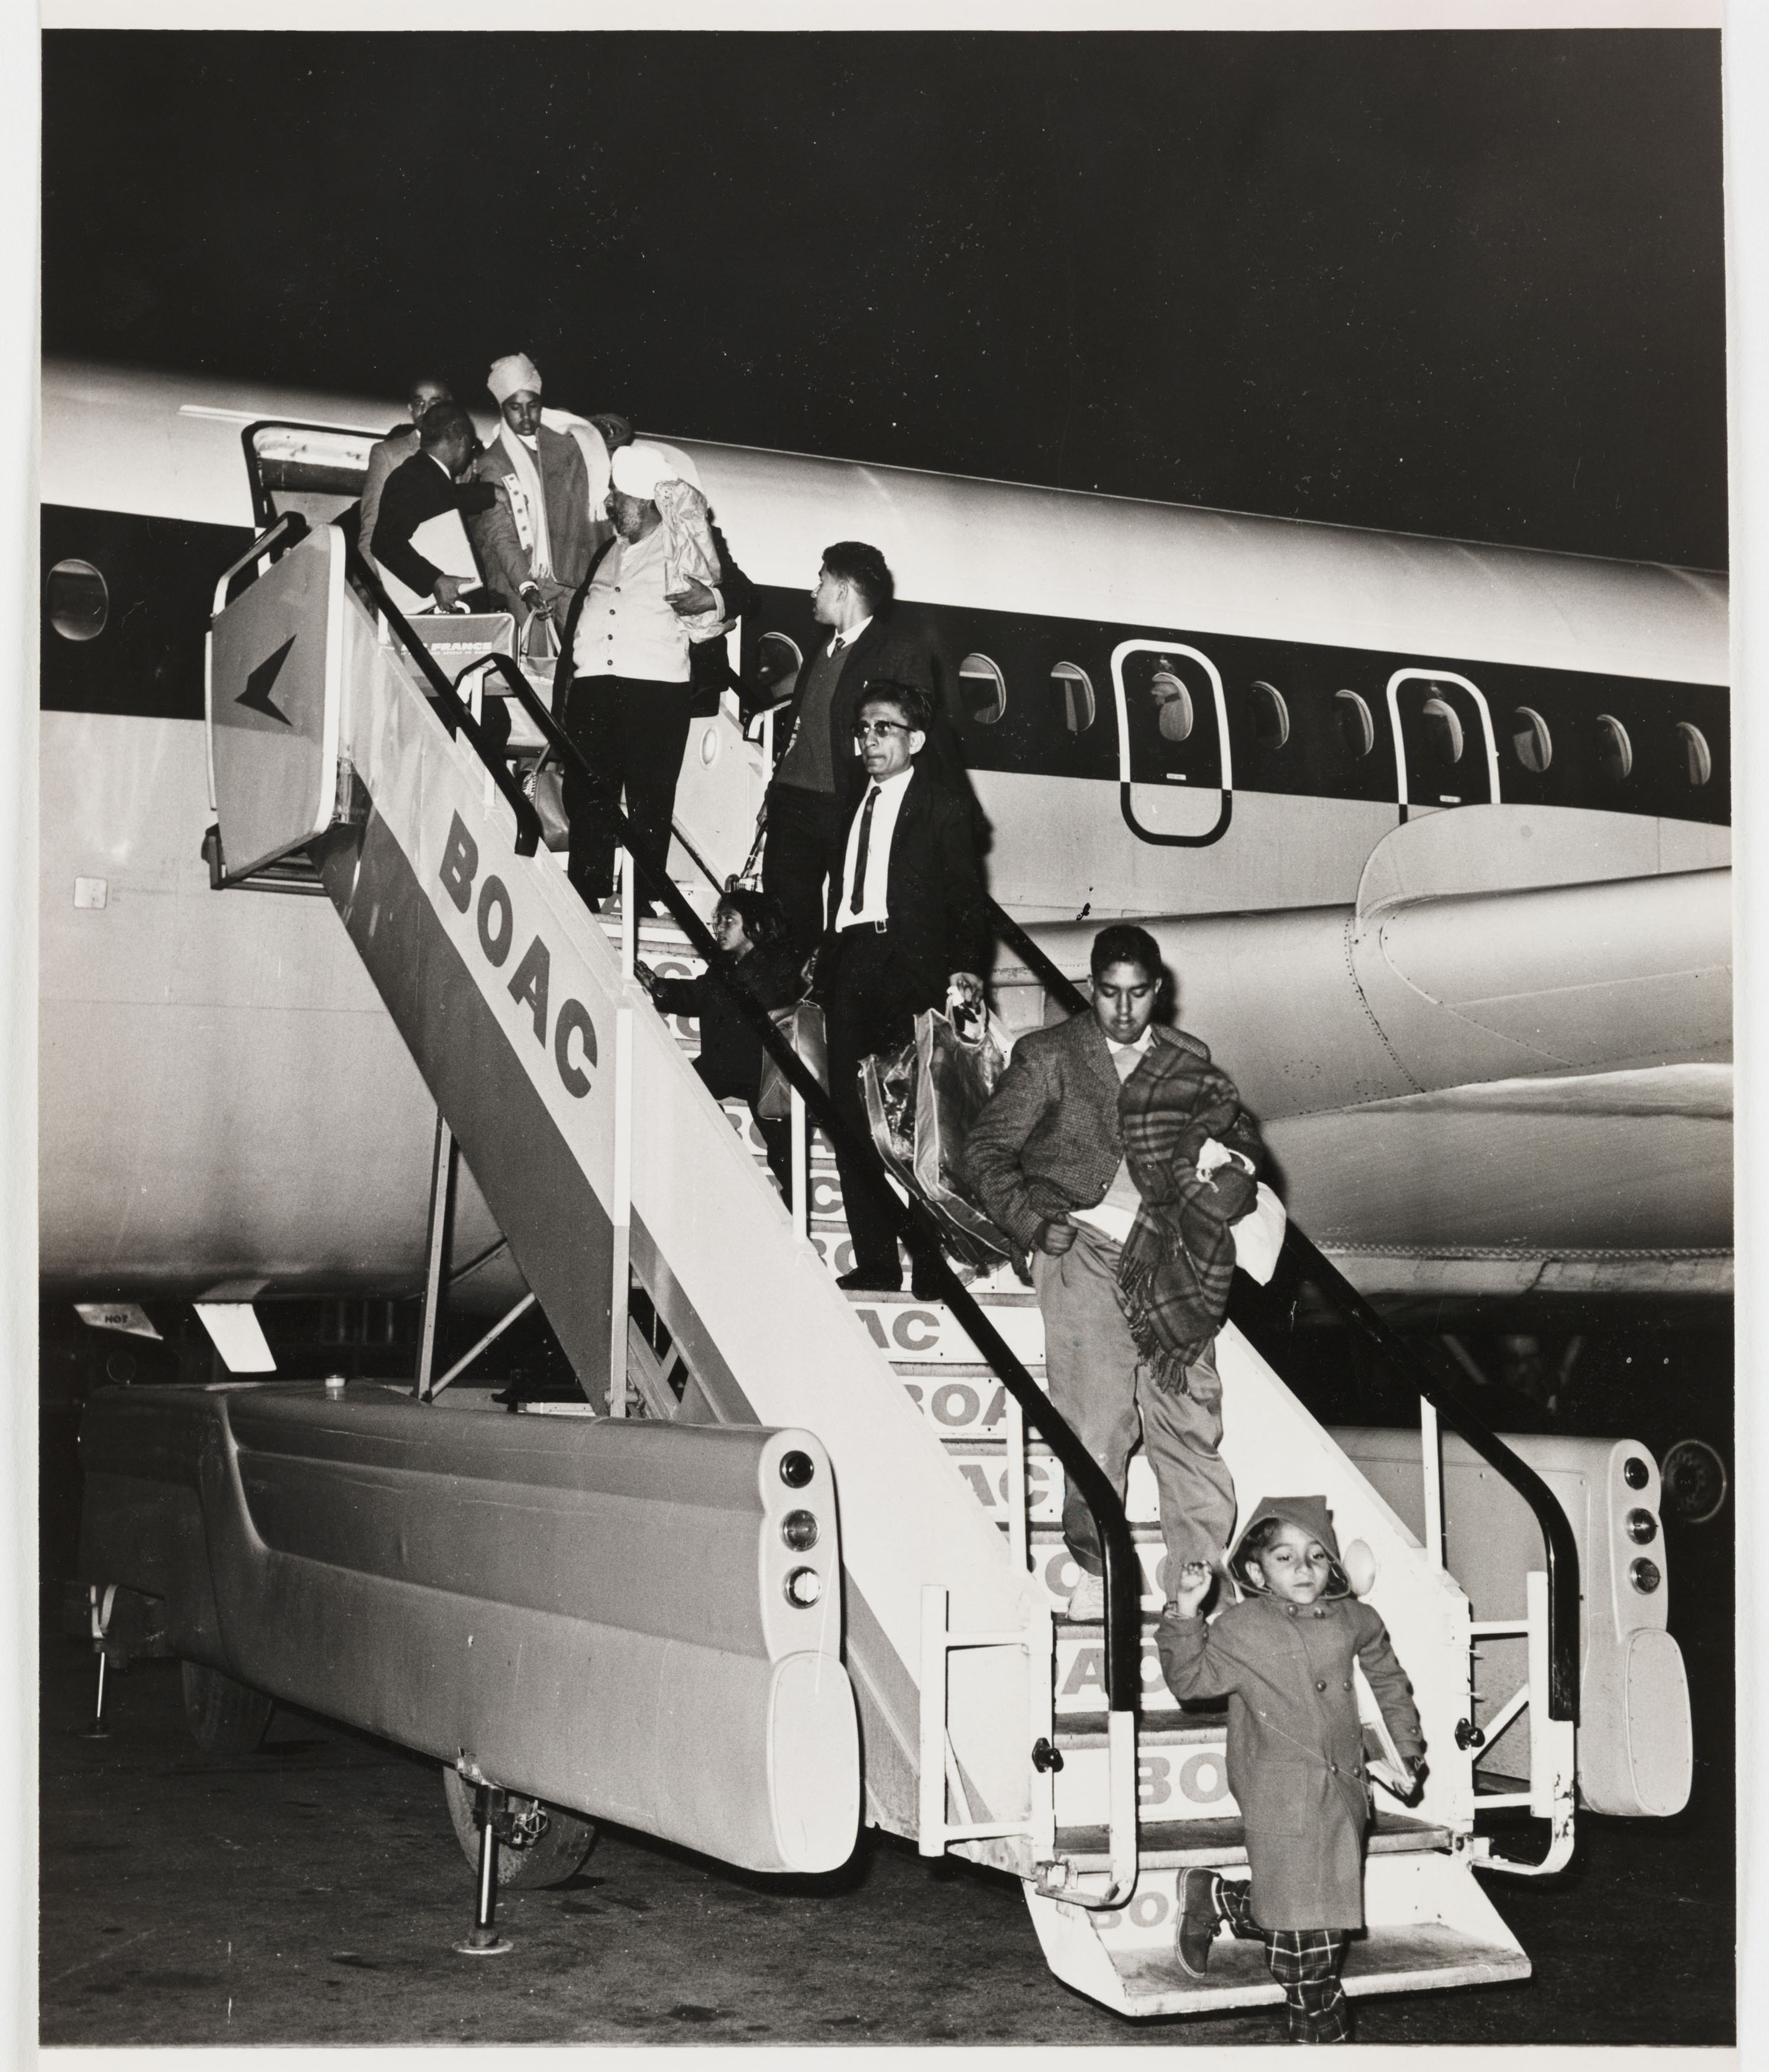 Black and white photograph of people leaving a plane. Image courtesy of Daily Herald Archive.